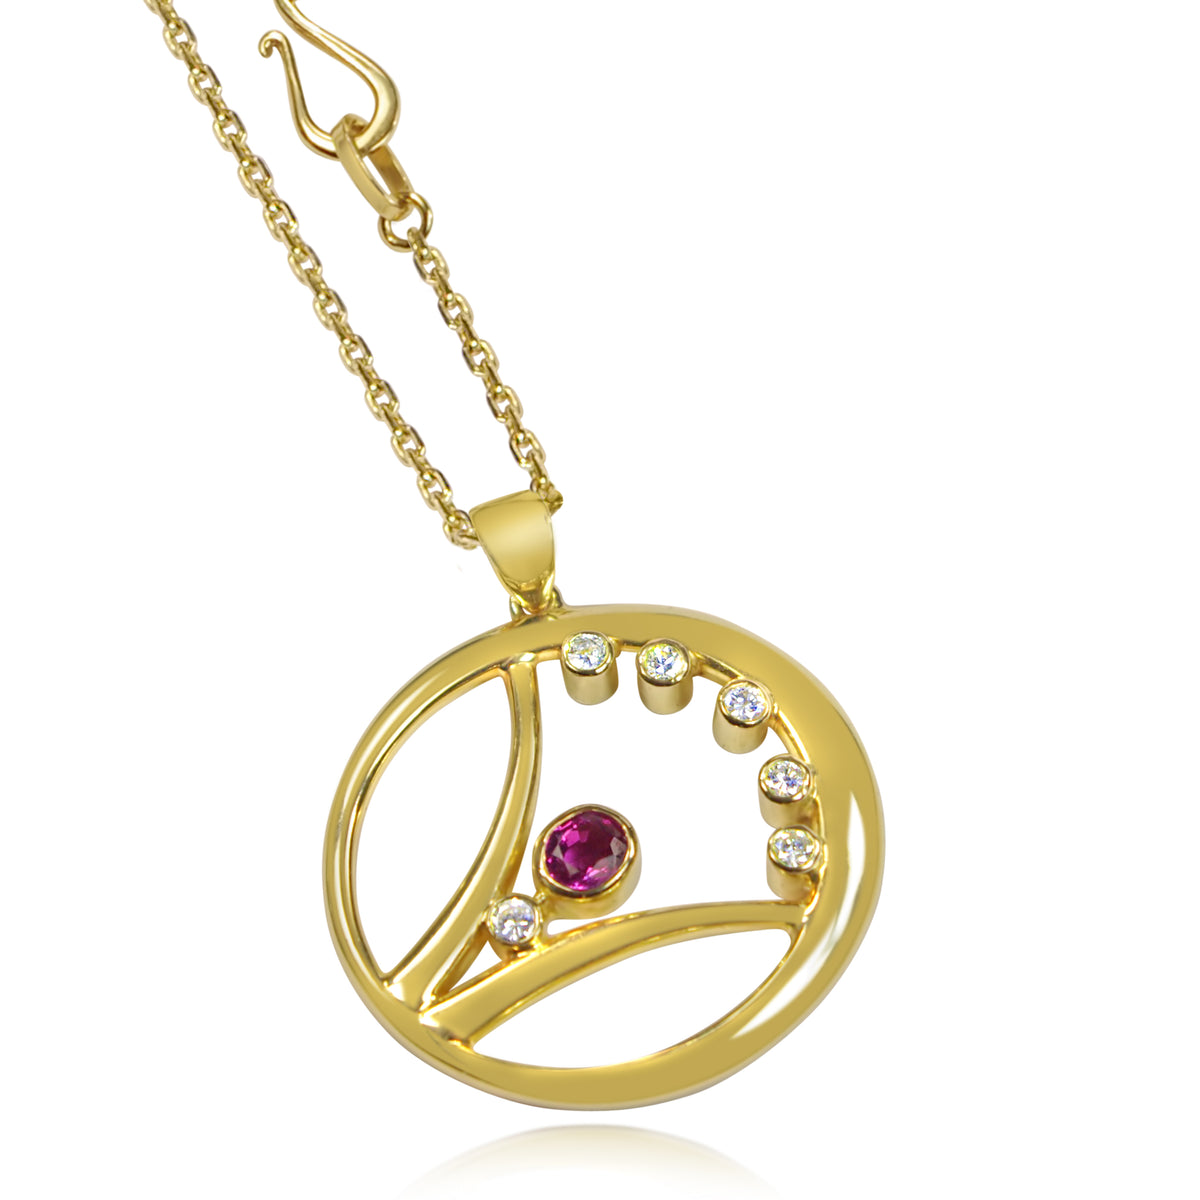 Curve Frame Pendant: 18ct Yellow Gold, Oval Ruby & Diamonds